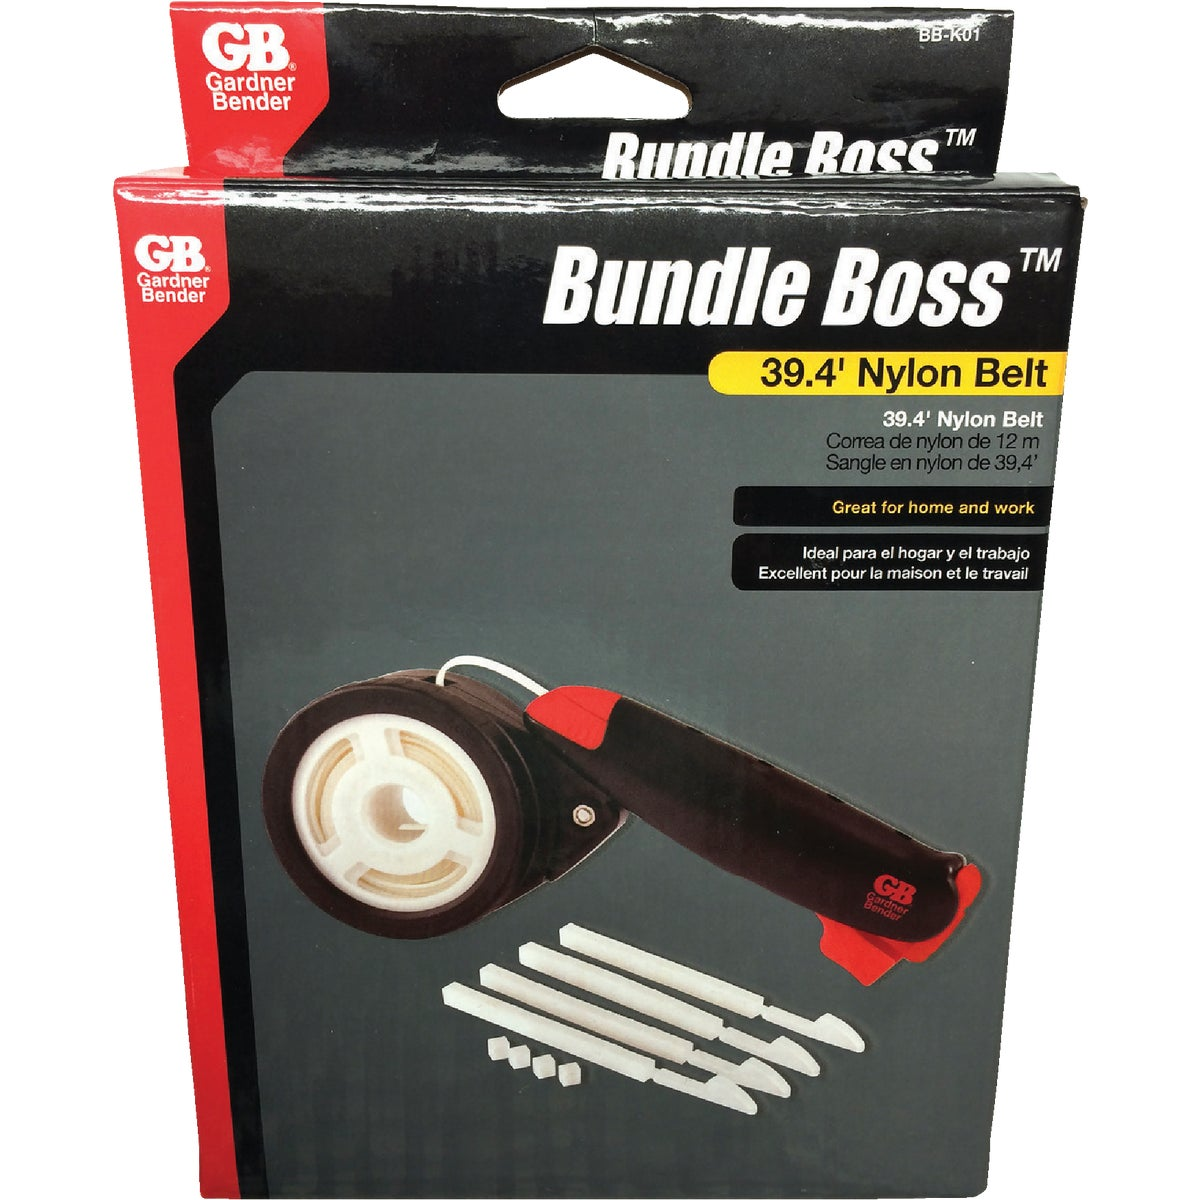 Bundle Boss Bundler Tool